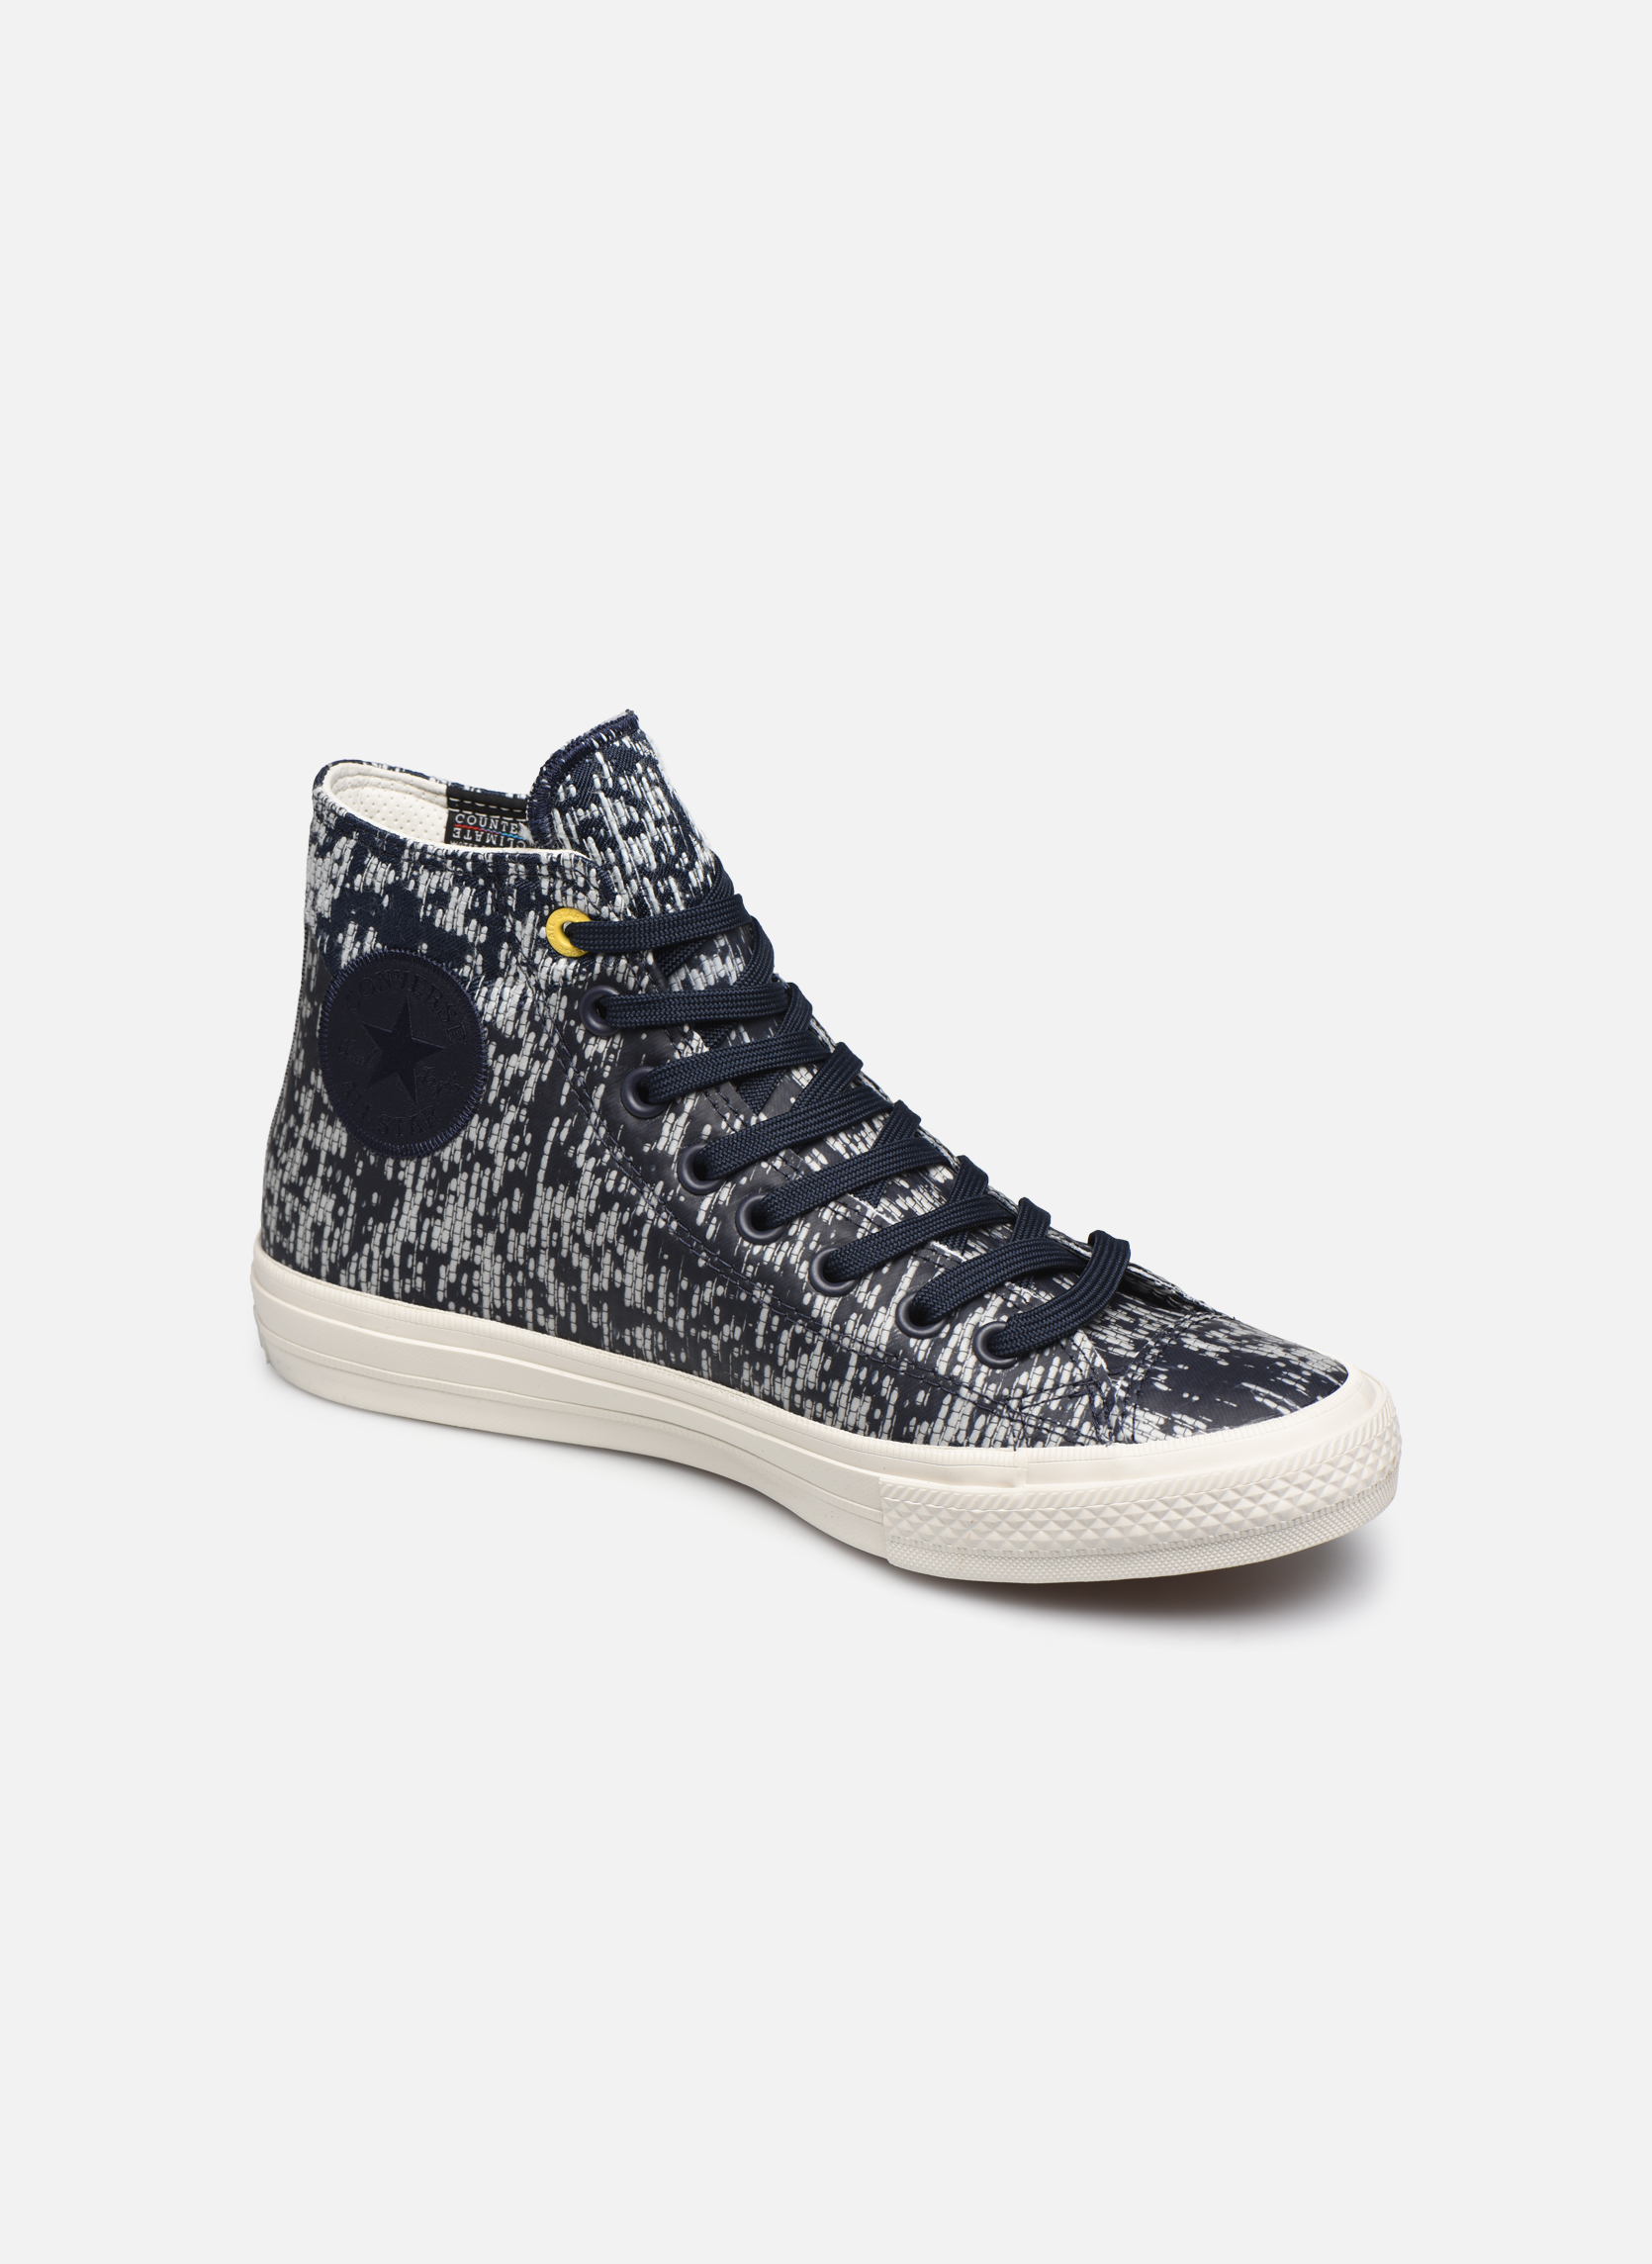 Converse Chuck Taylor All Star II Rubber Hi M